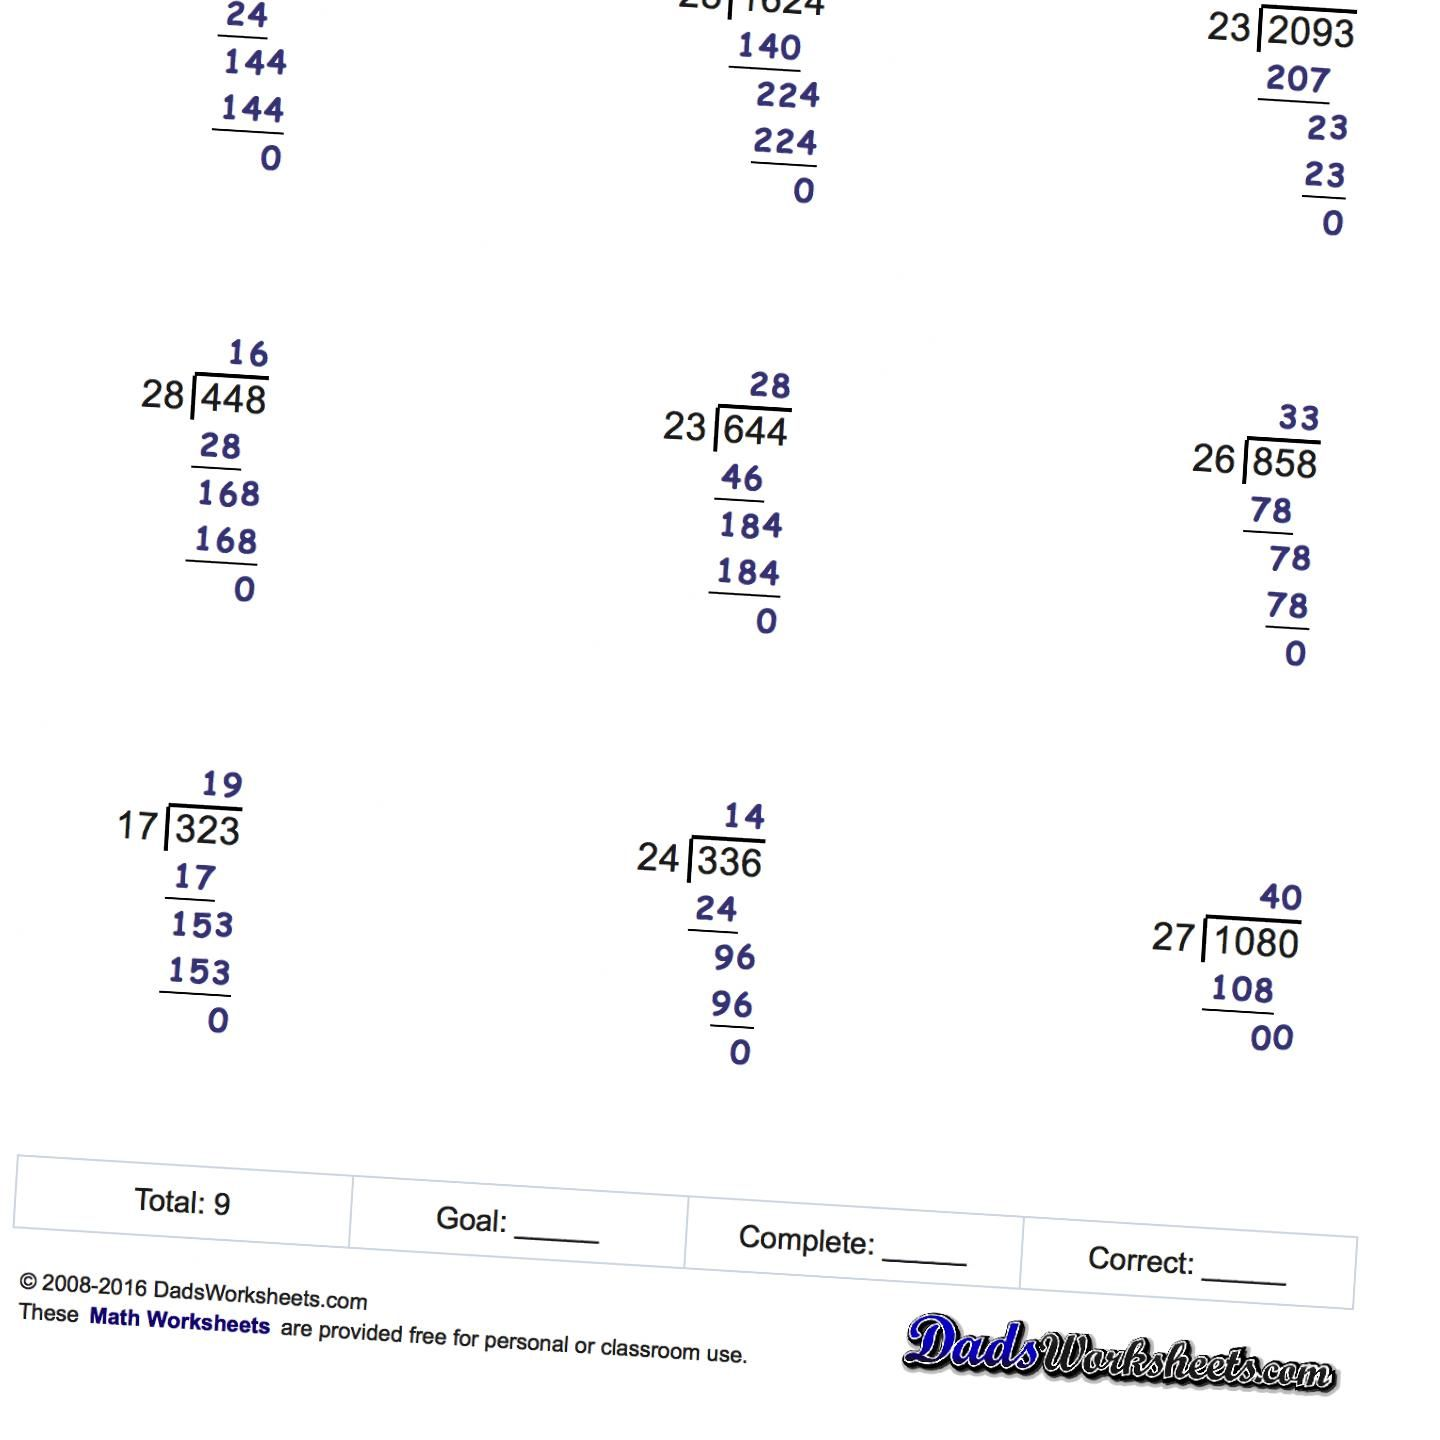 Long Division Worksheets Printable With Answer Keys That